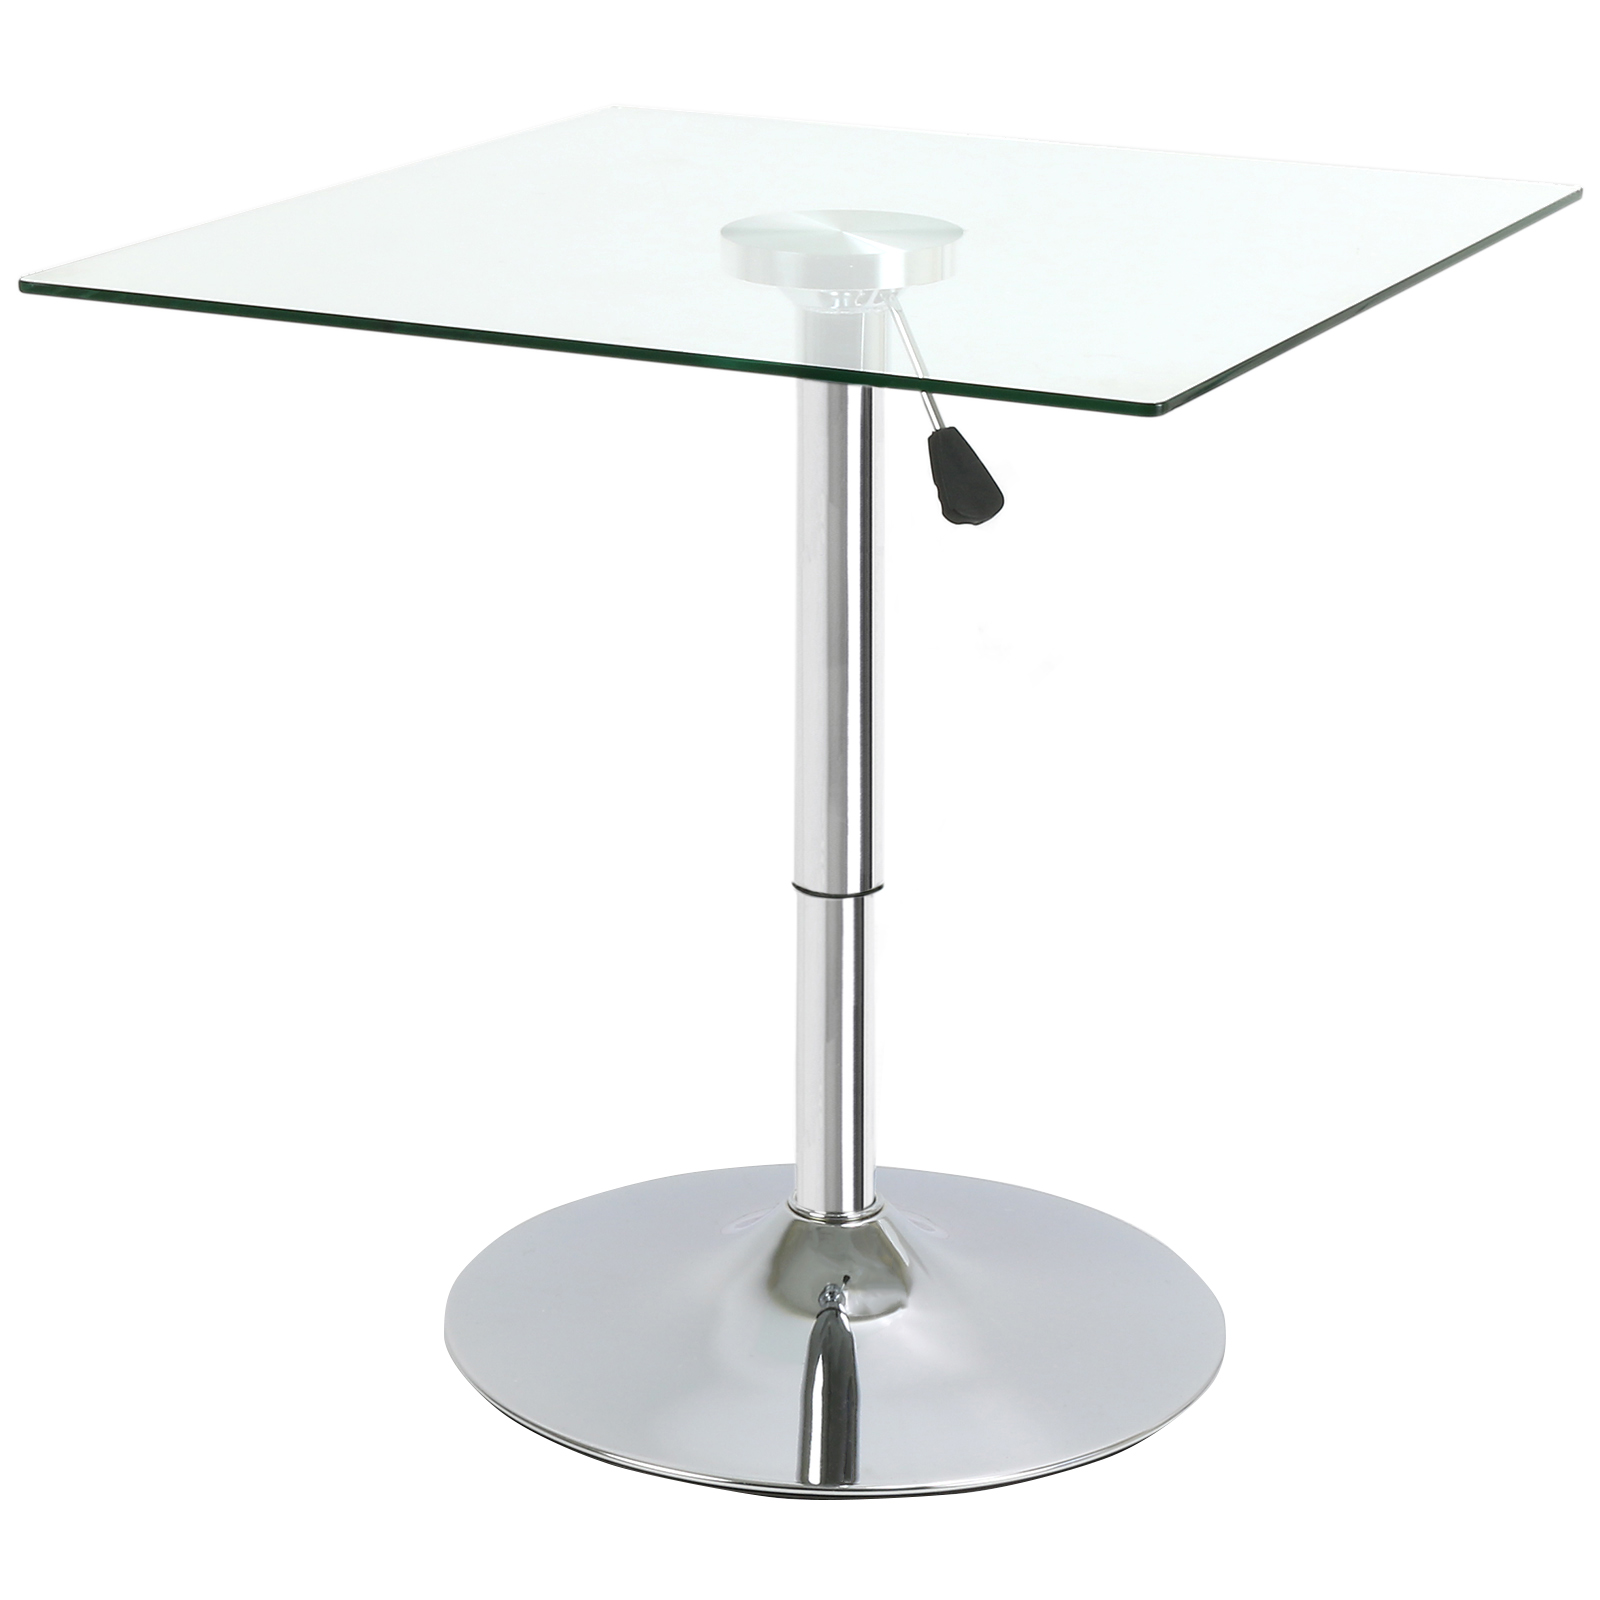 SQUARE ADJUSTABLE CLEAR GLASS BISTRODINING TABLE CAFE  : GLS117E from www.ebay.co.uk size 1600 x 1600 jpeg 393kB